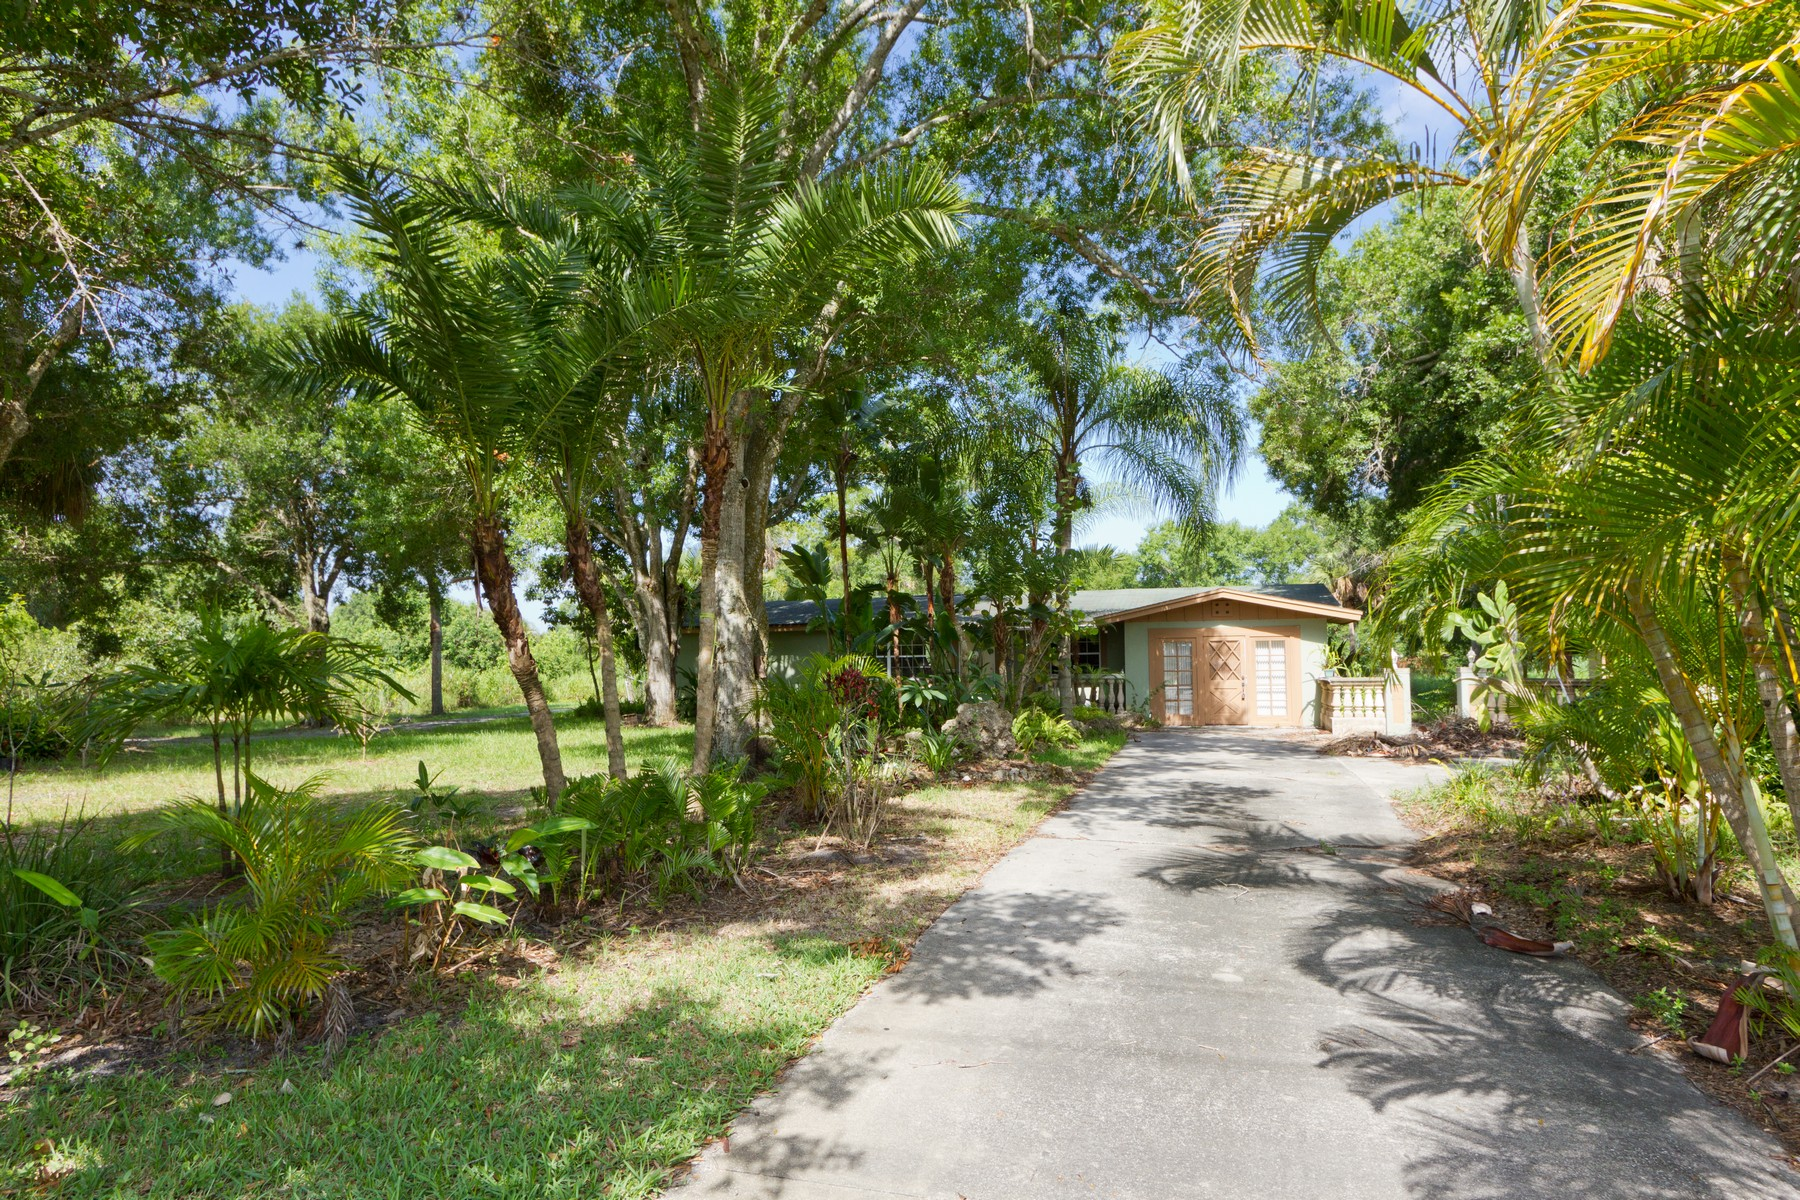 Single Family Homes for Sale at Diamond in the Rough 2395 43rd Avenue Vero Beach, Florida 32960 United States